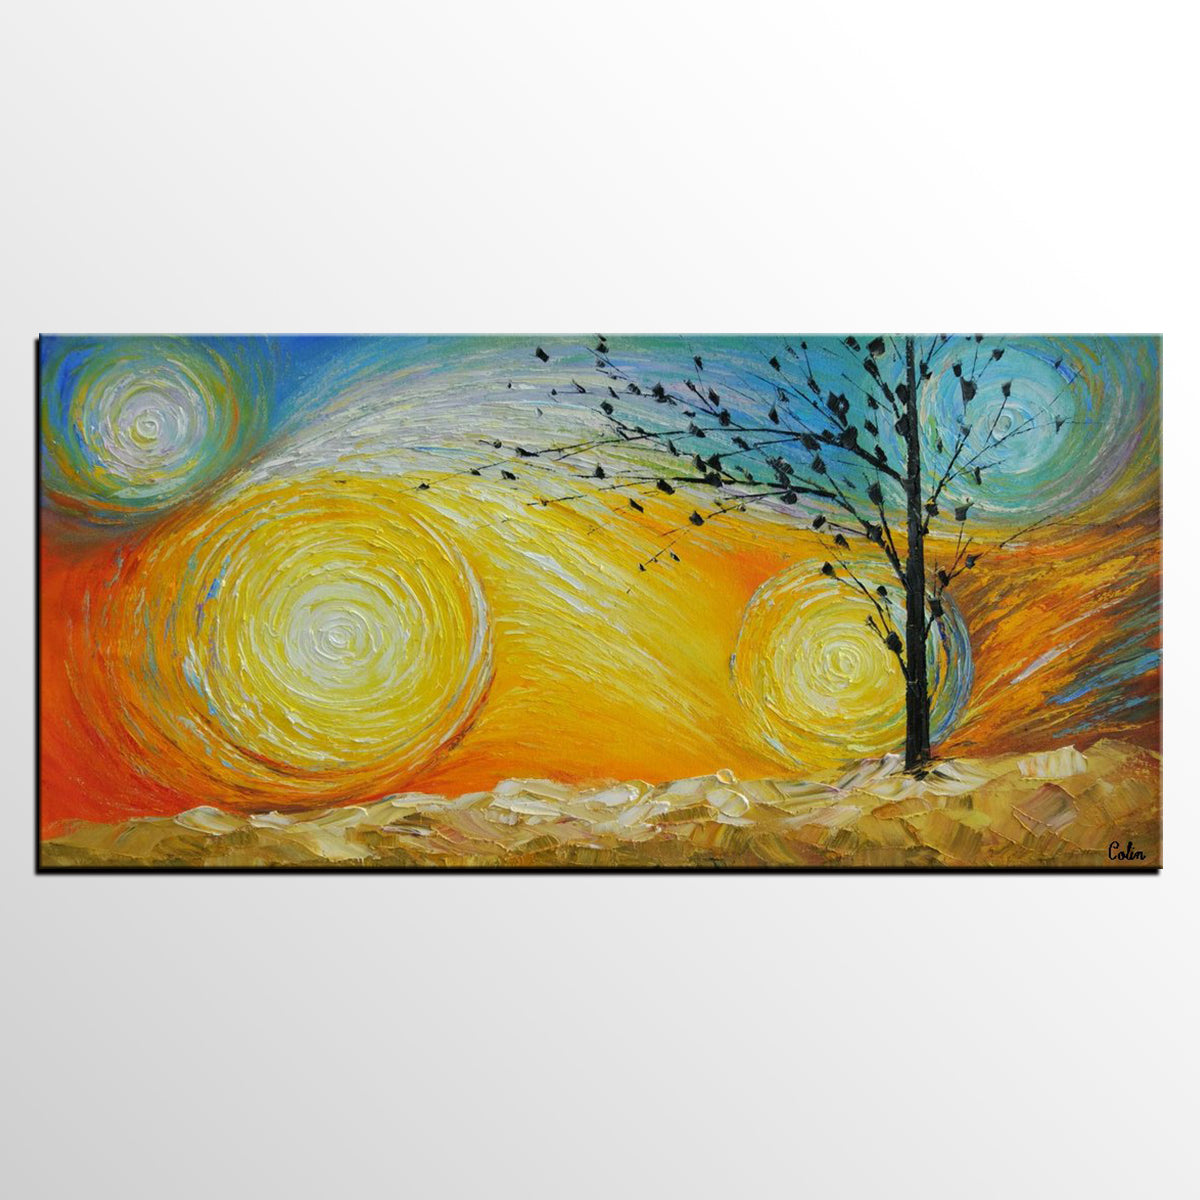 Abstract Art for Sale, Canvas Wall Art, Tree of Life Painting, Heavy Texture Canvas Art